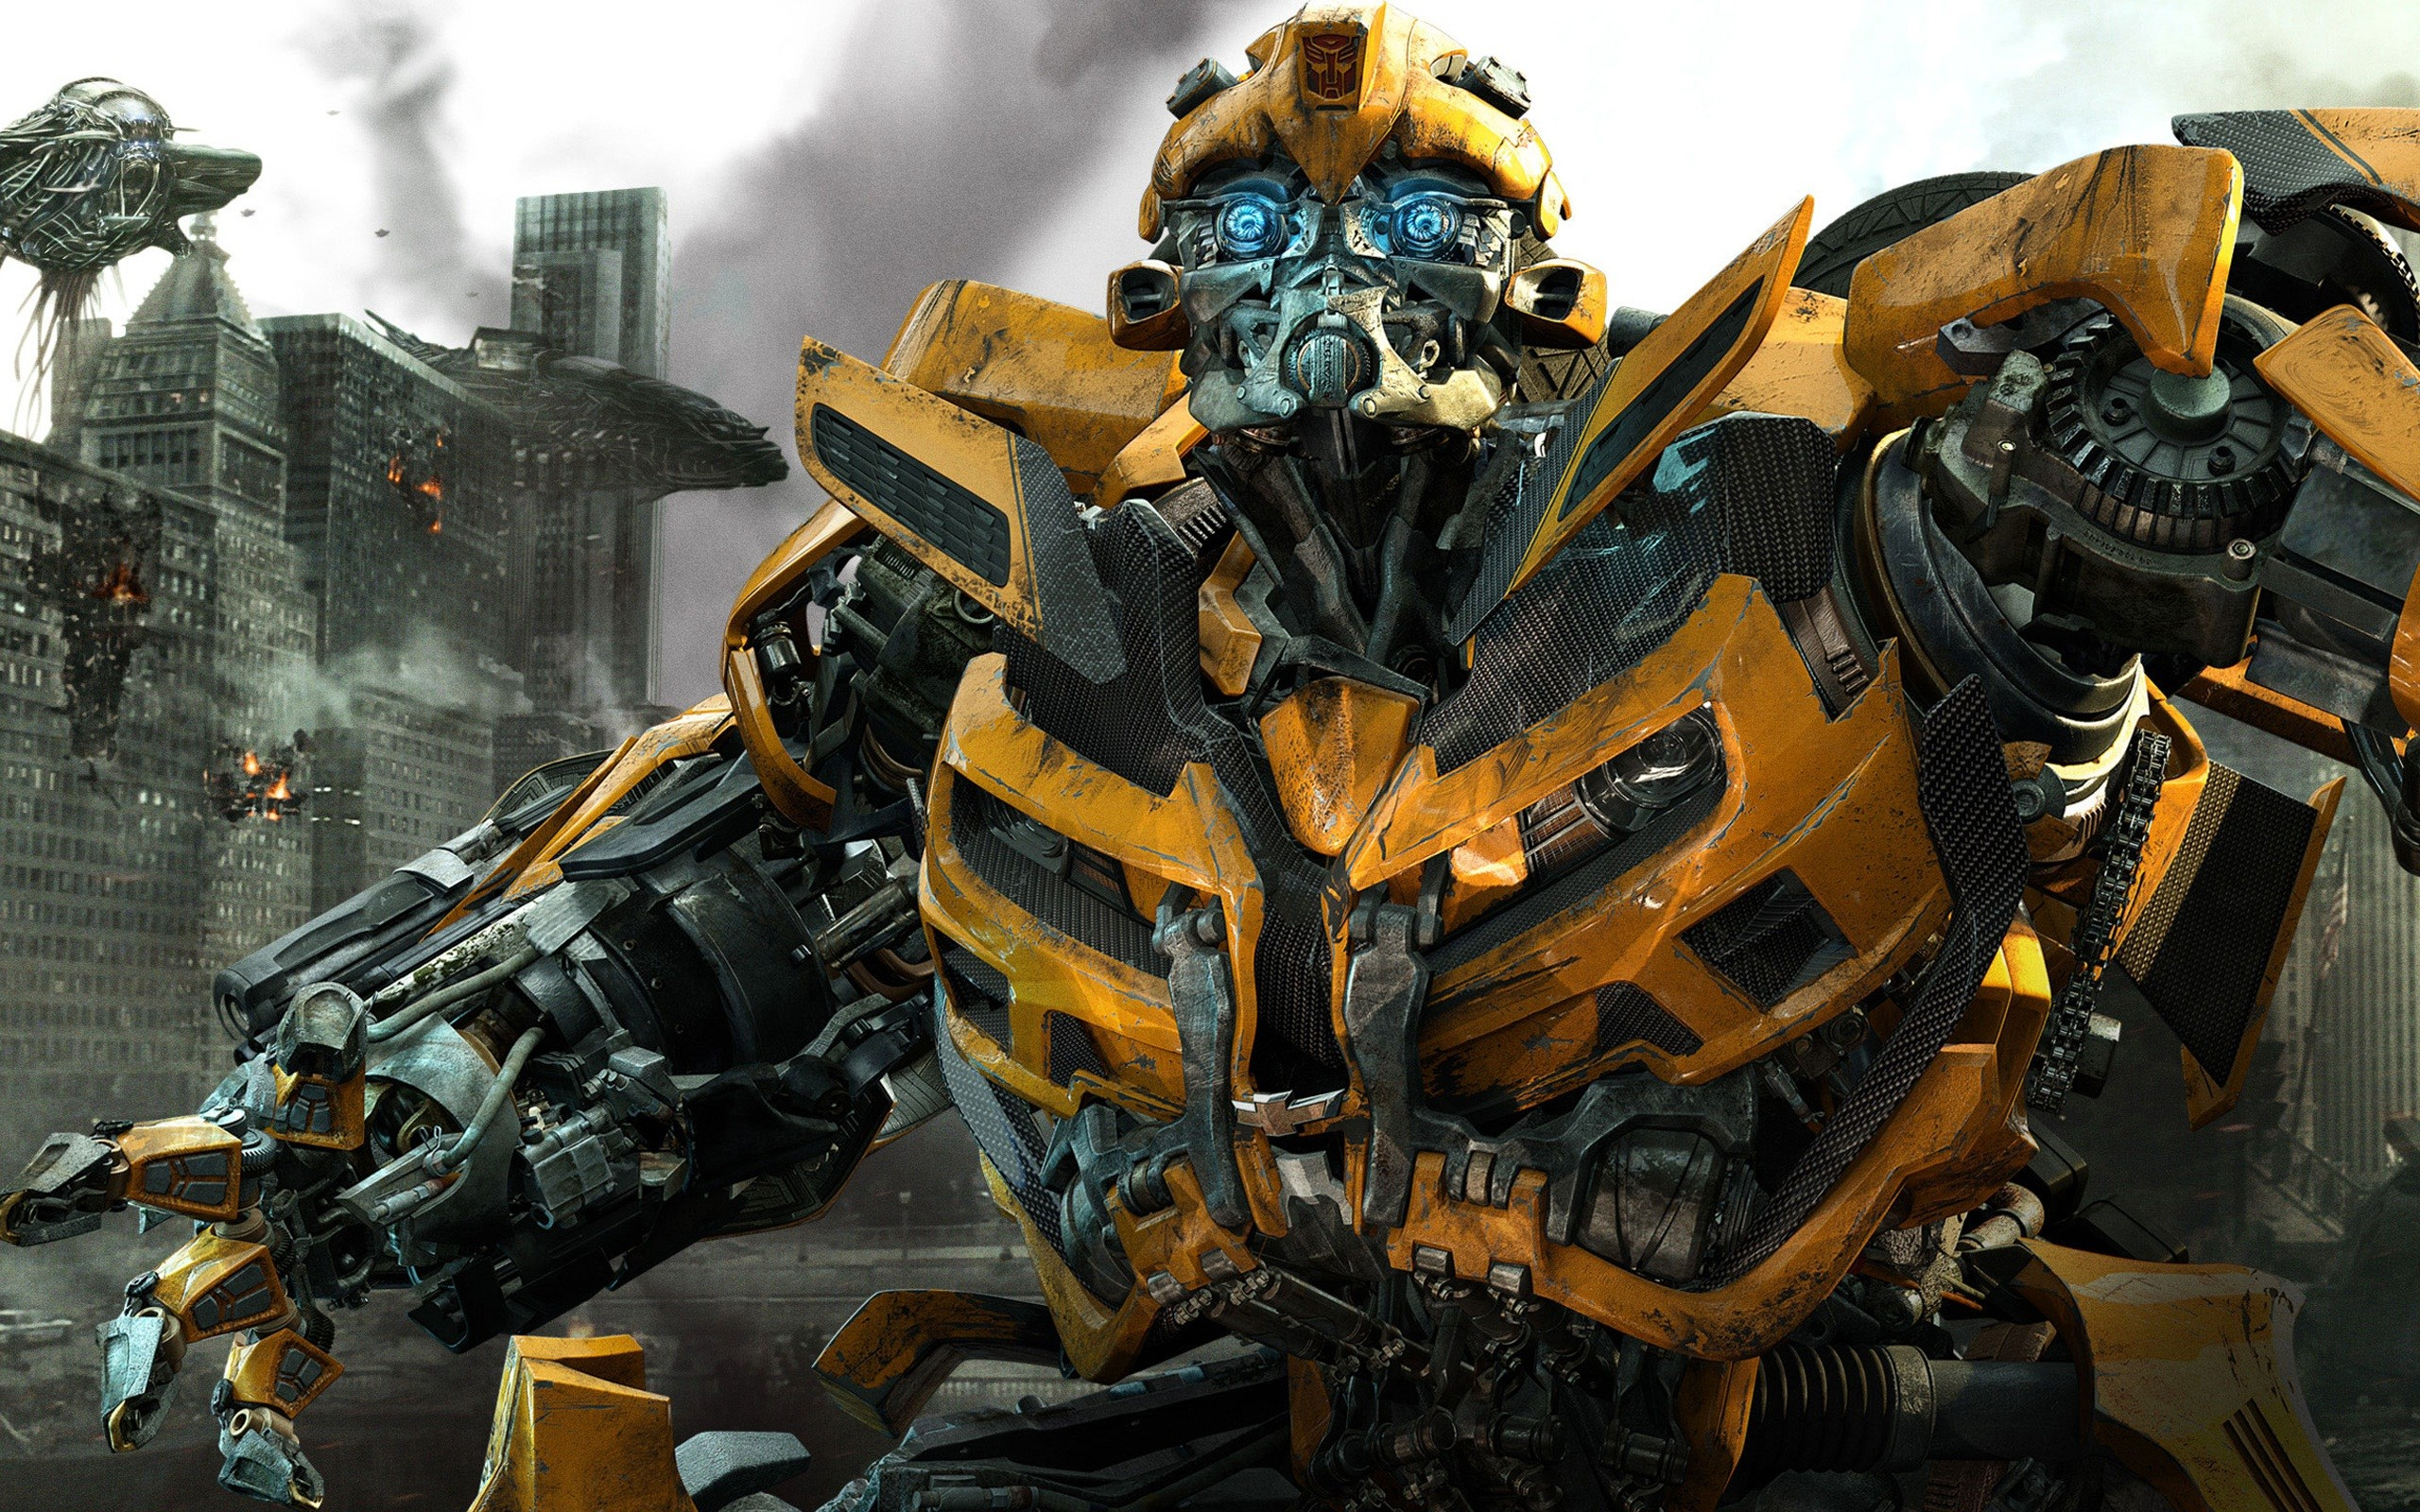 Bumblebee wallpaper Ideas – How To Bring Your Computer Wallpaper To Life